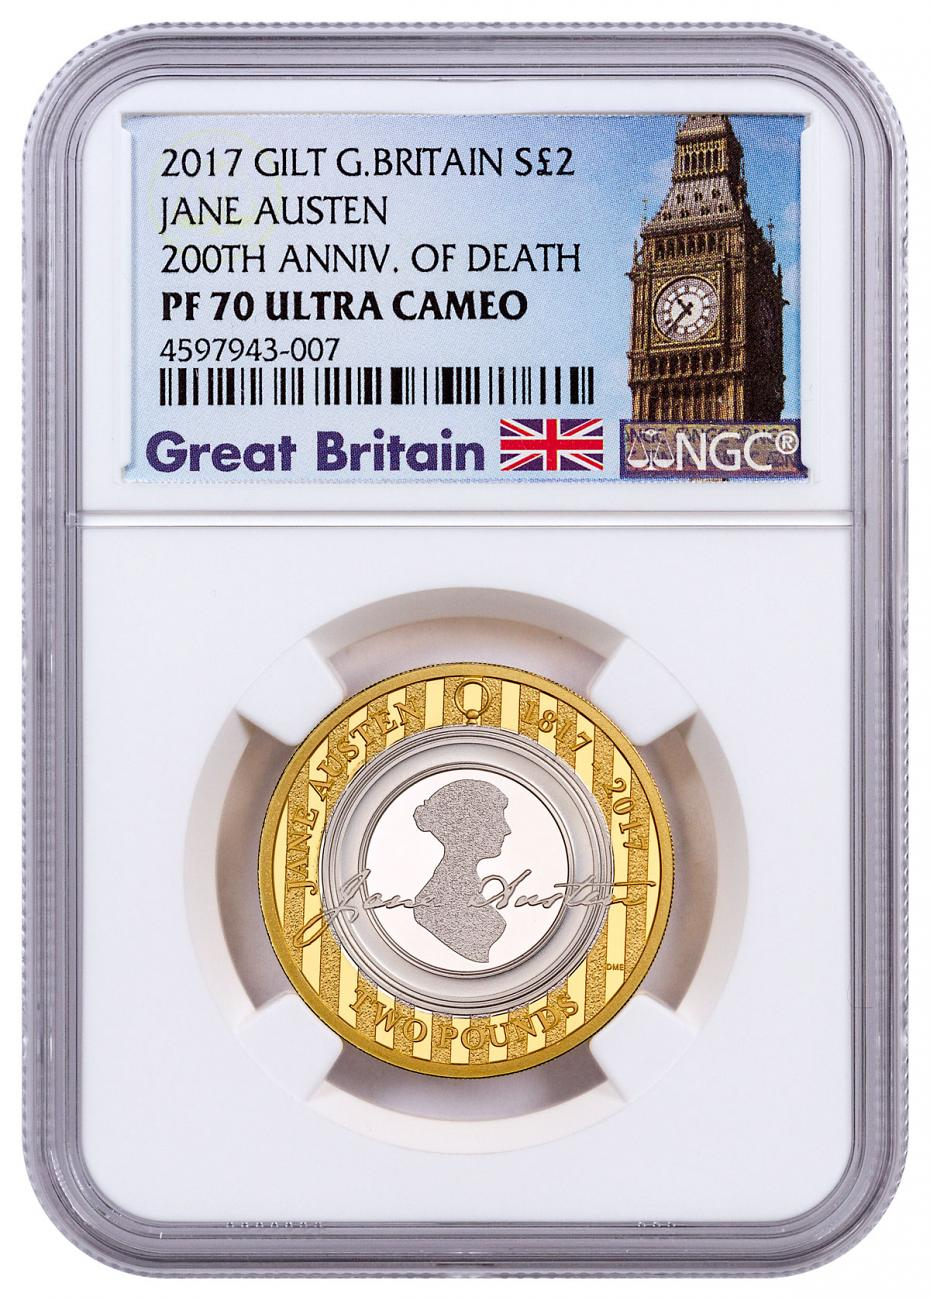 2017 Great Britain An Enduring Romance with Jane Austen Silver Gilt Proof £2 Coin NGC PF70 UC Exclusive Big Ben Label